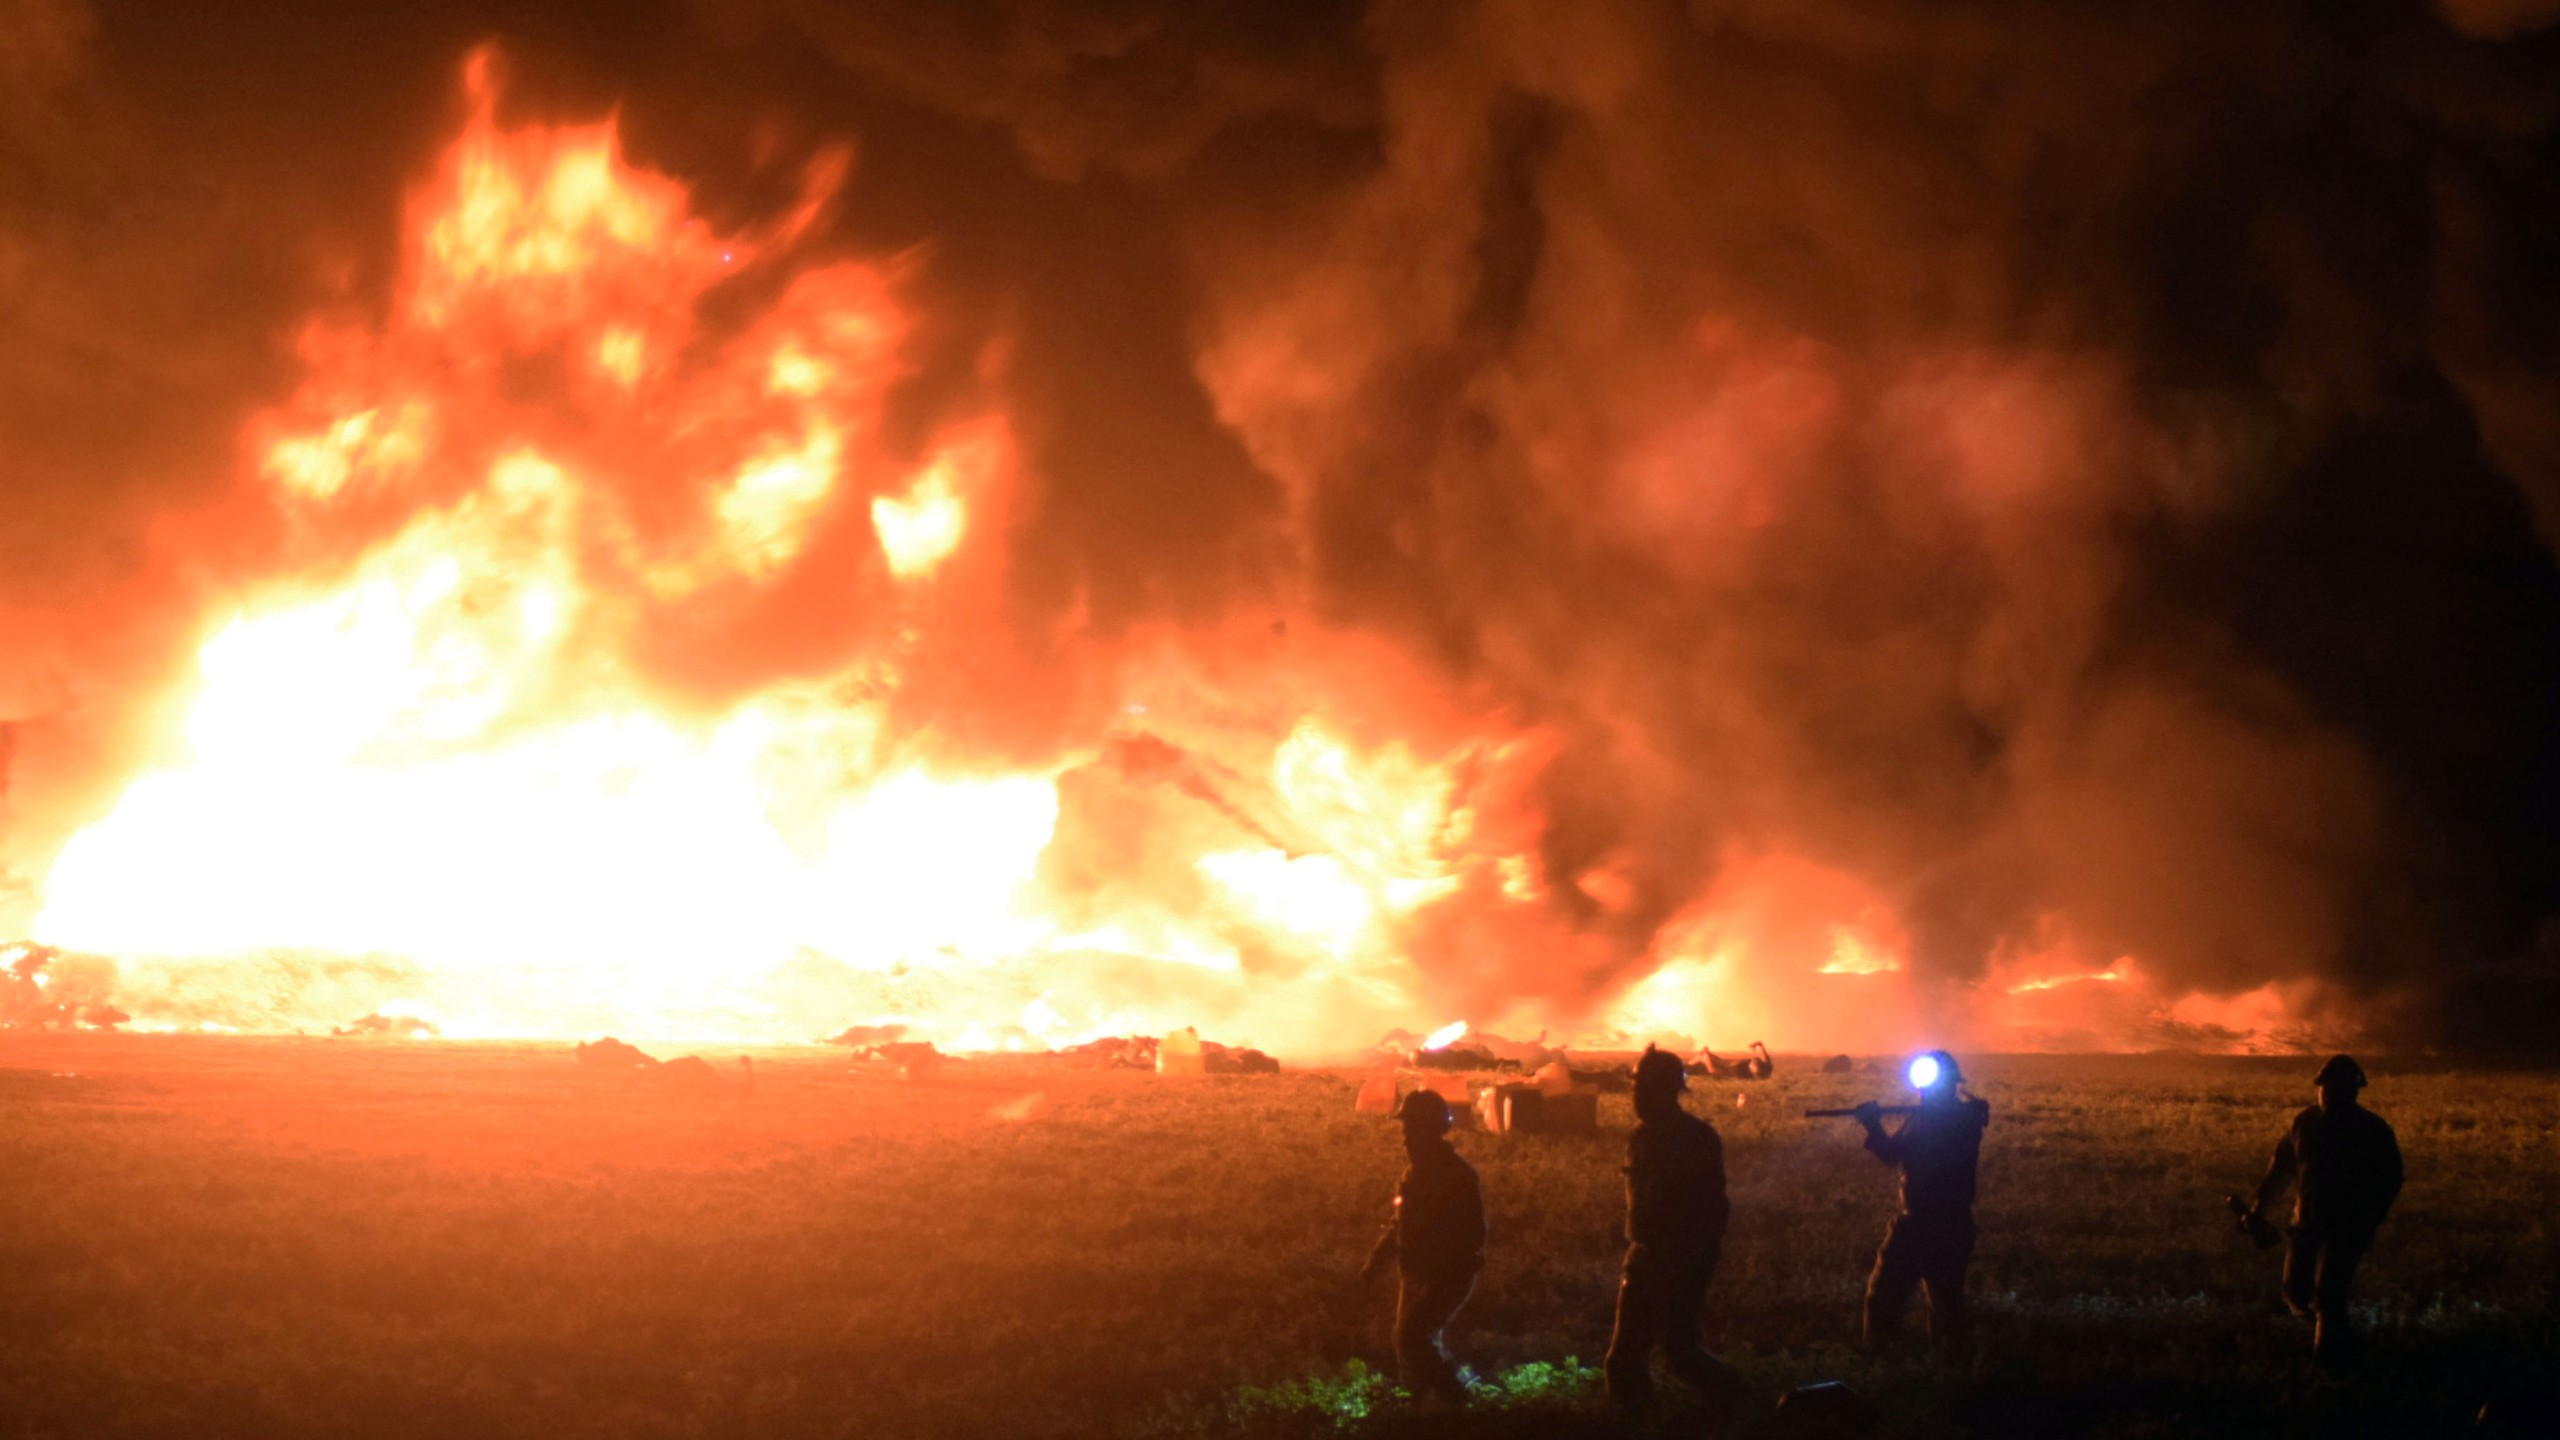 Flames burn at the scene of a massive blaze trigerred by a leaky pipeline in Tlahuelilpan, Hidalgo state, on January 18, 2019. (Credit: FRANCISCO VILLEDA/AFP/Getty Images)